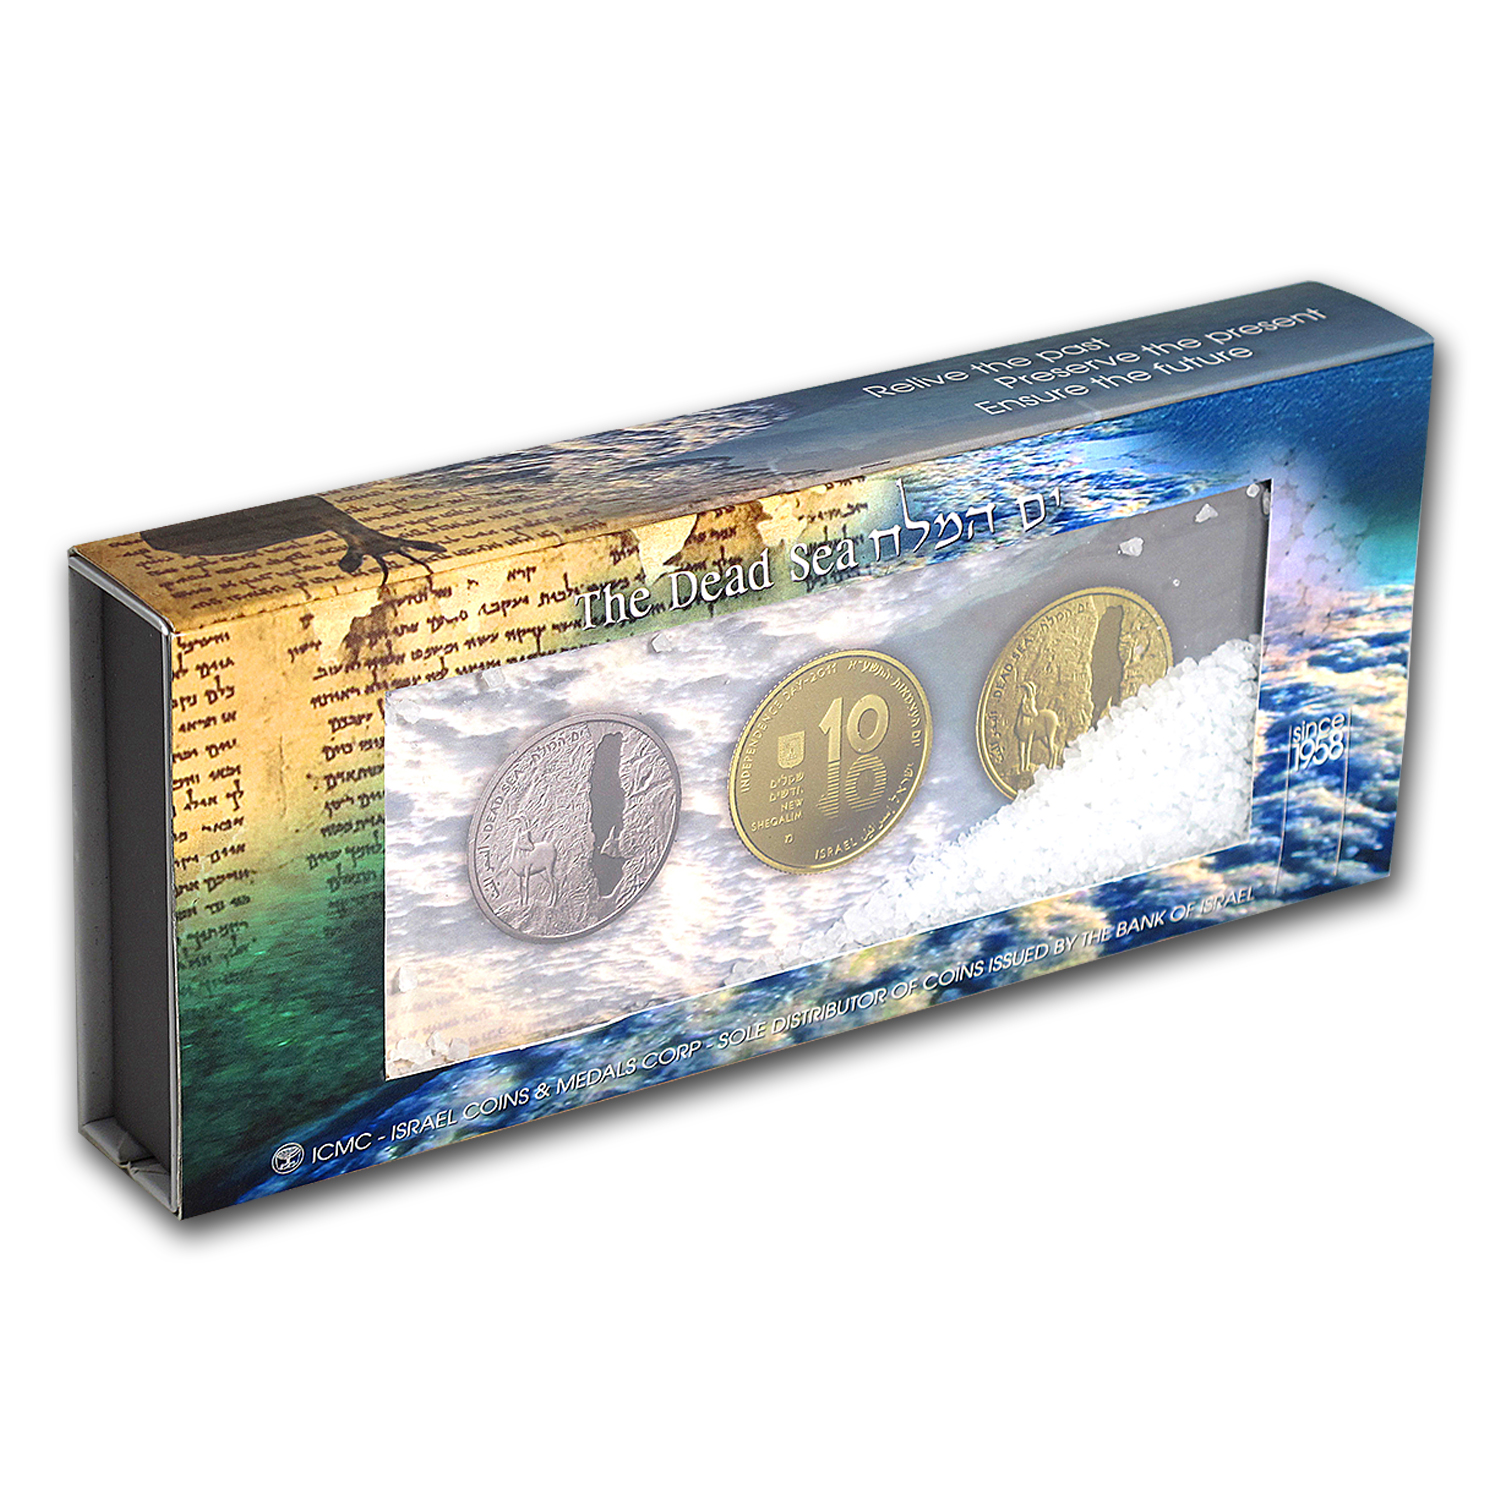 2011 Israel Silver 2 NIS Dead Sea Proof (w/Box & COA)